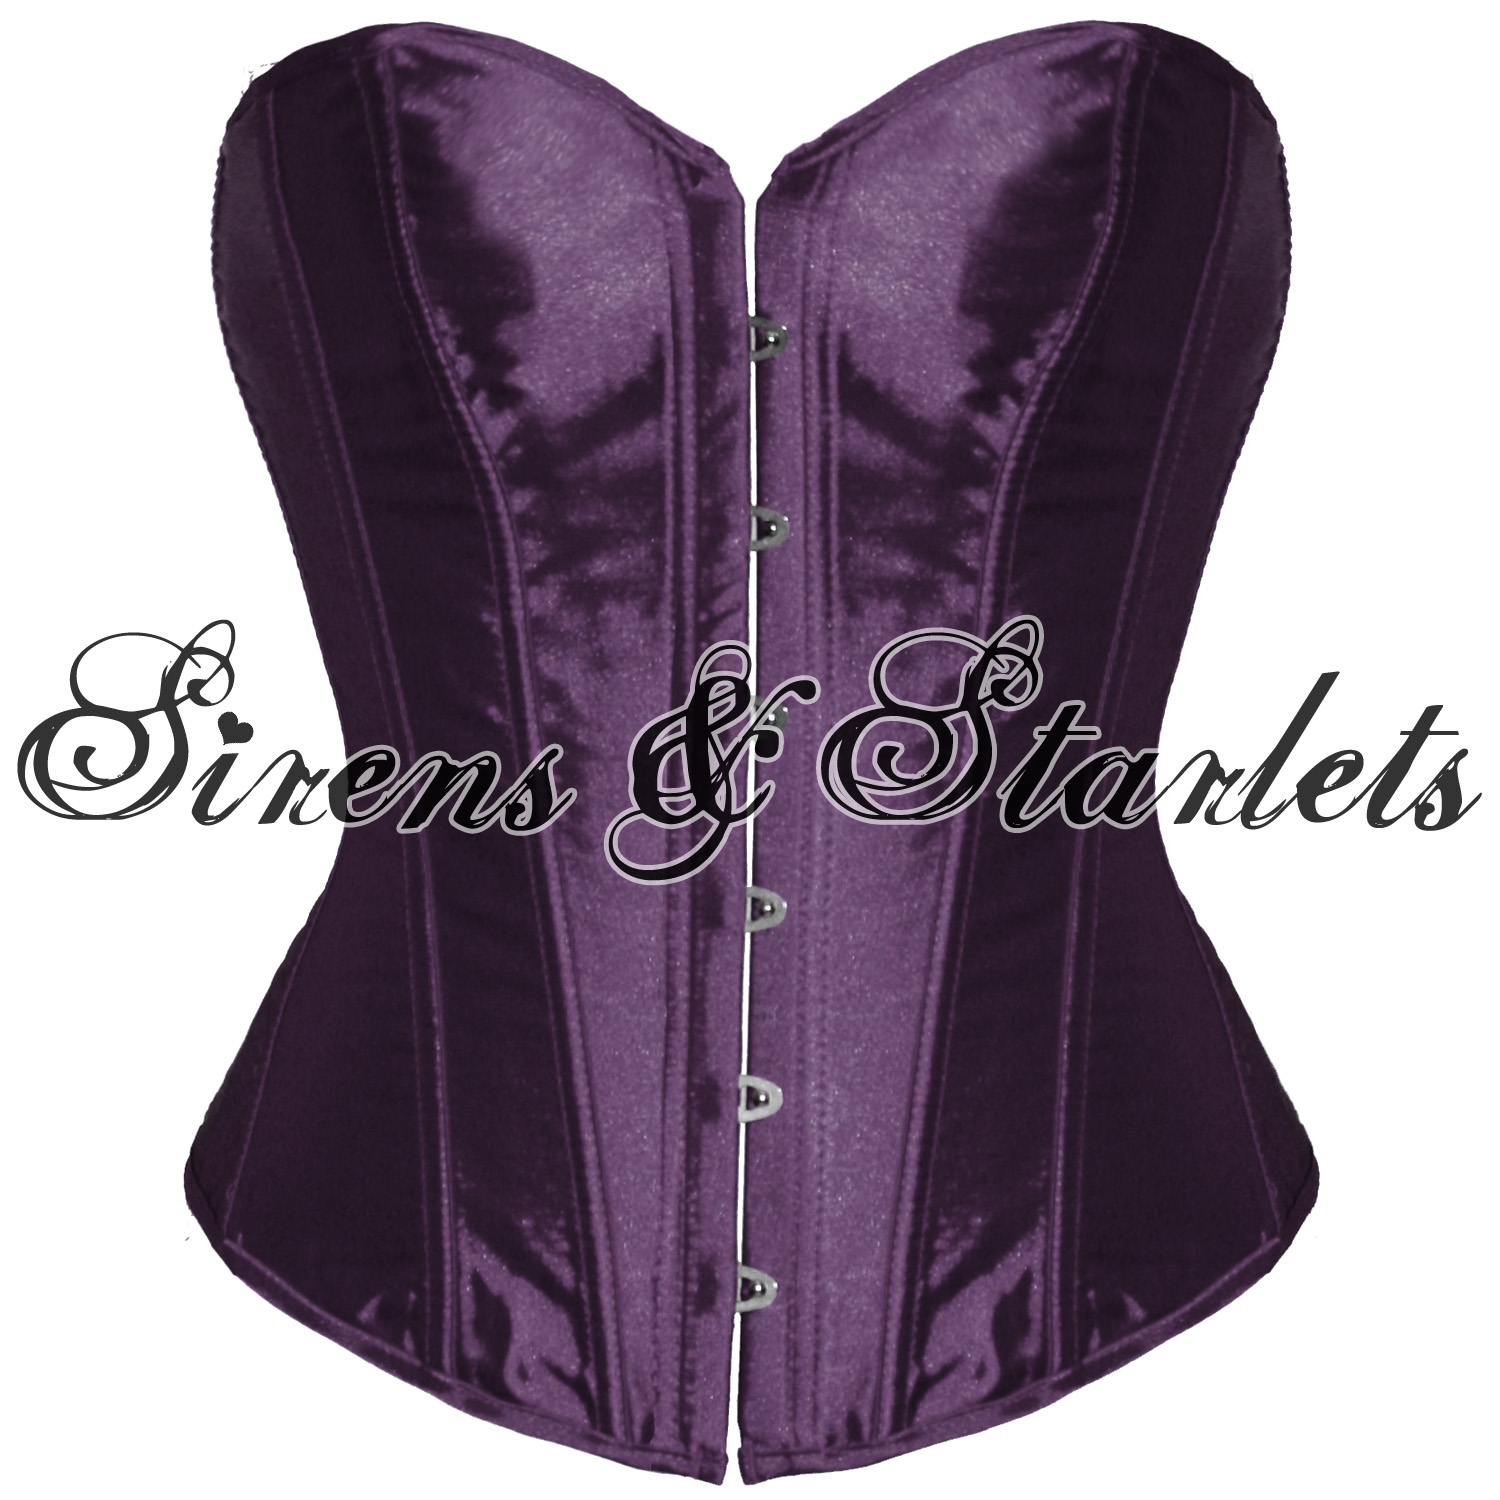 PURPLE-SATIN-GOTHIC-BURLESQUE-BASQUE-CORSET-BASQUE-TOP